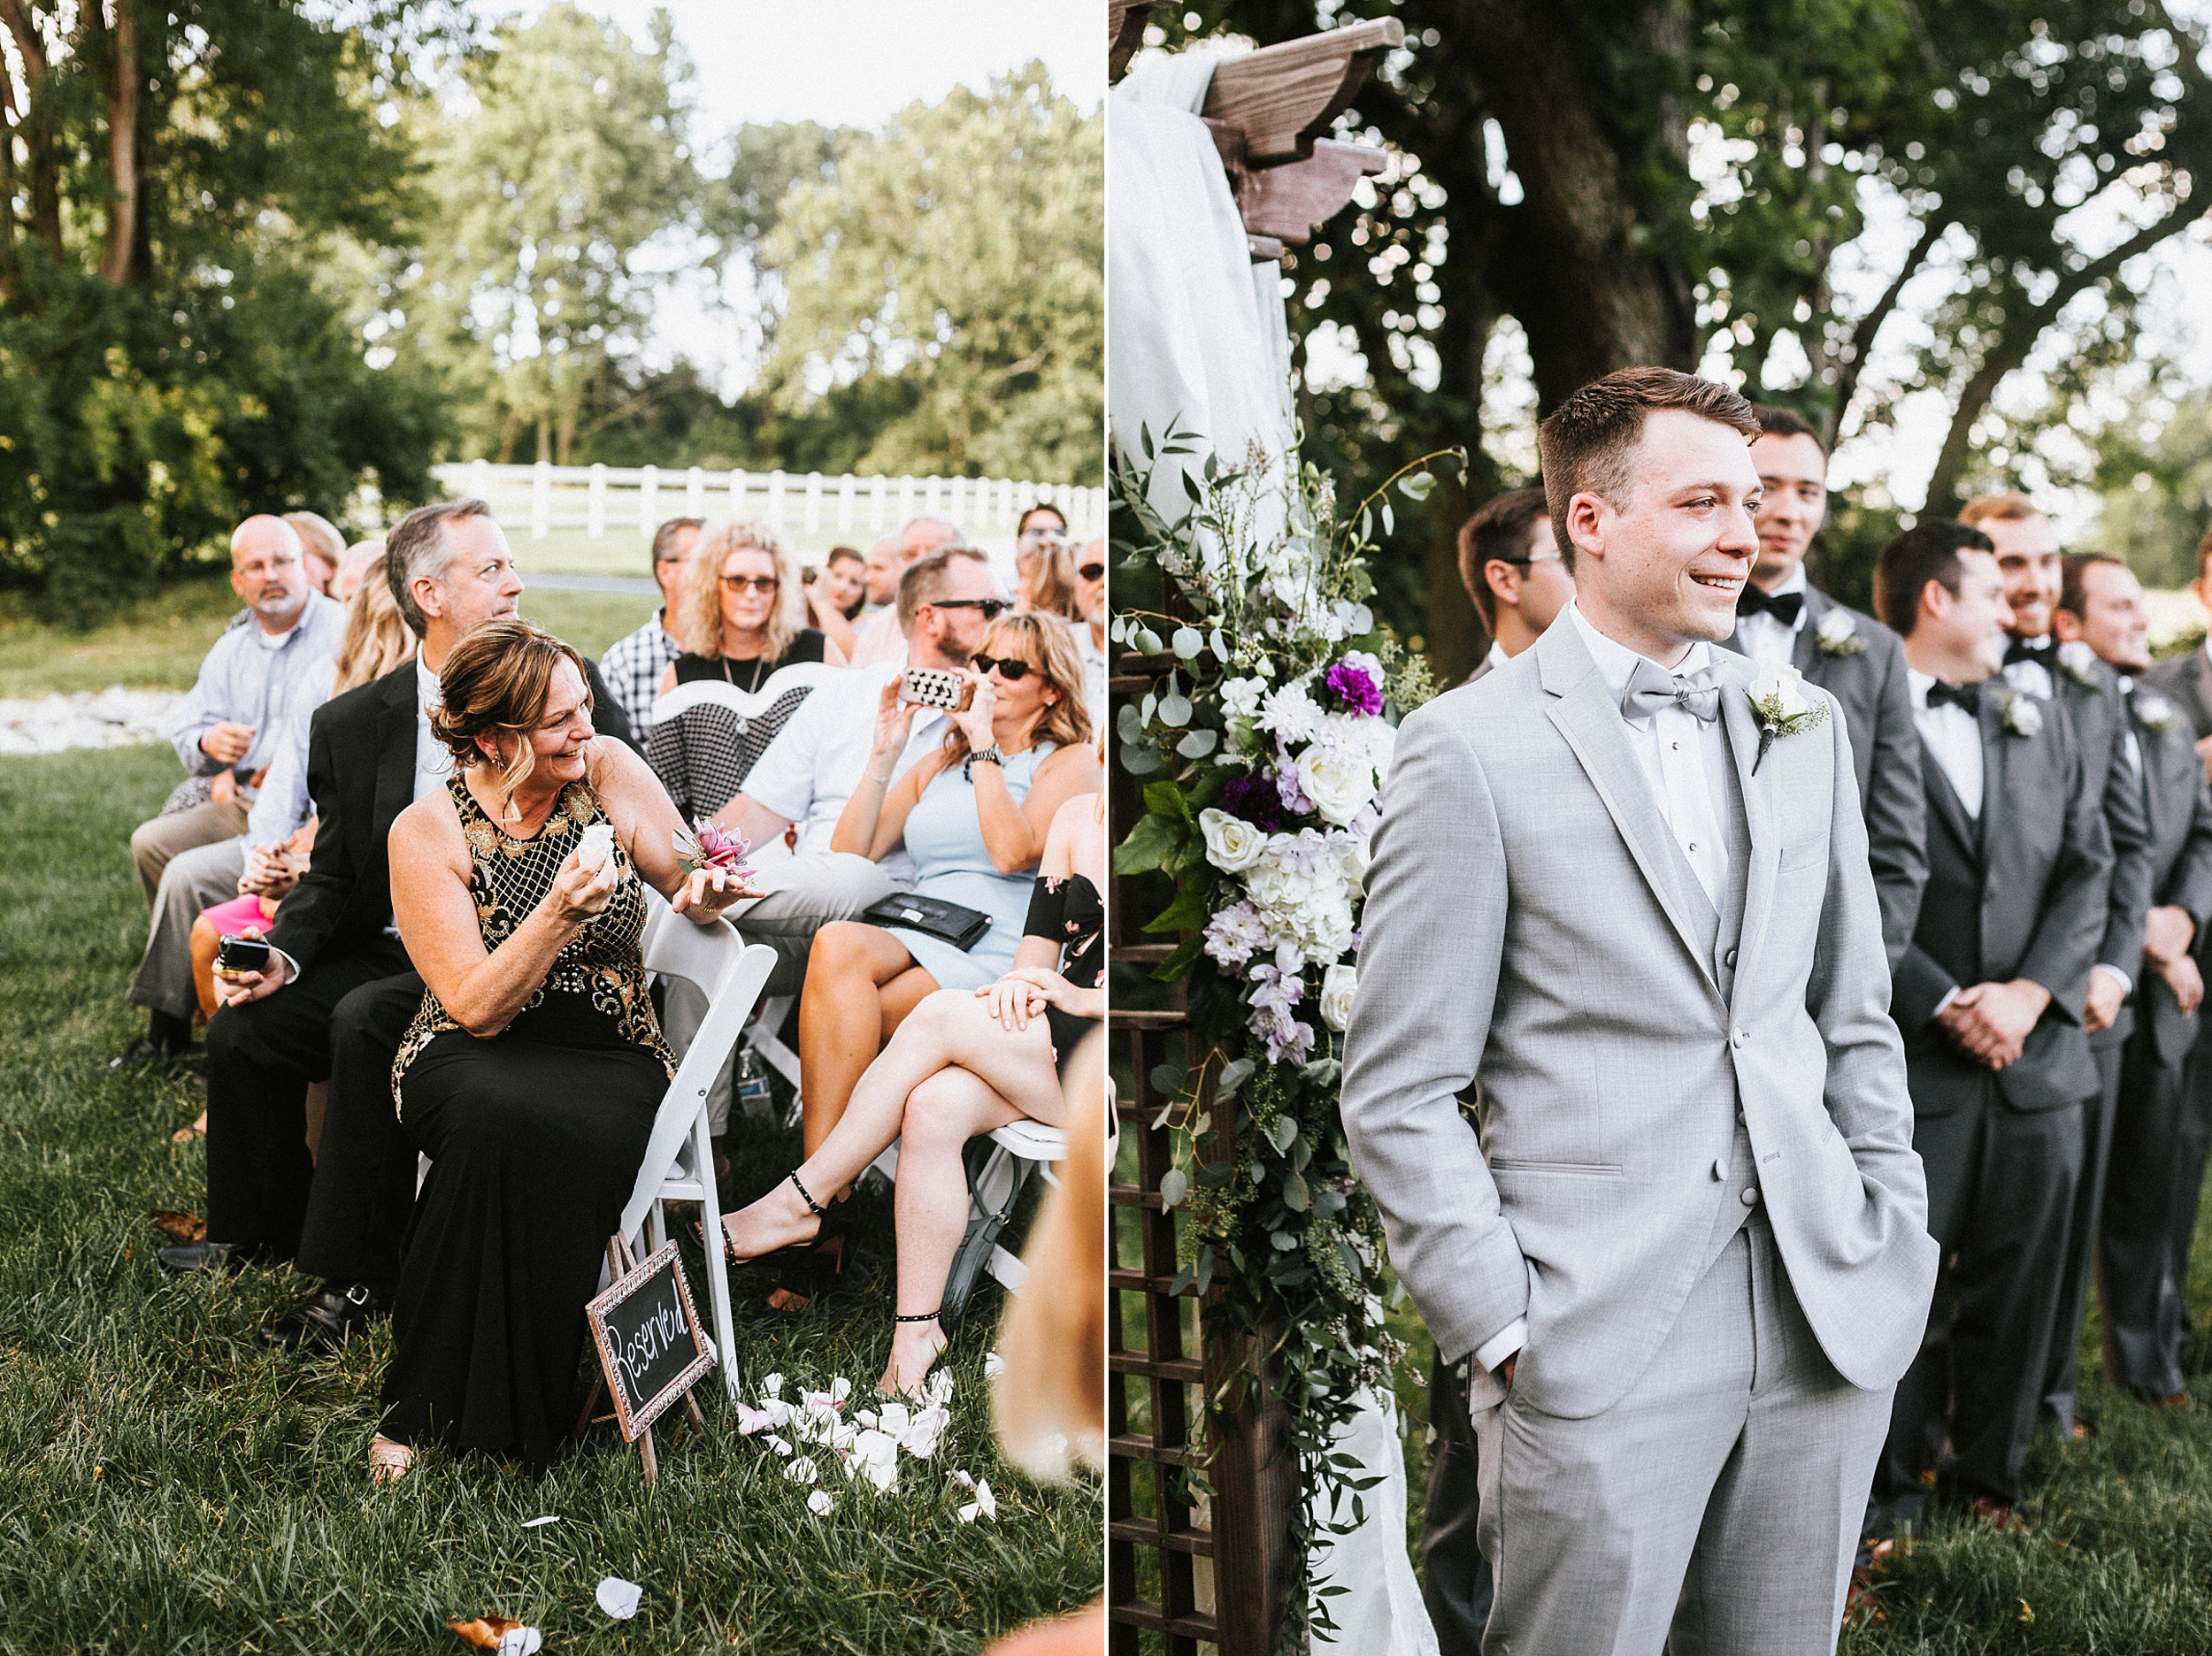 Brooke Townsend Photography - Cincinnati Wedding Photographer (96 of 230).jpg